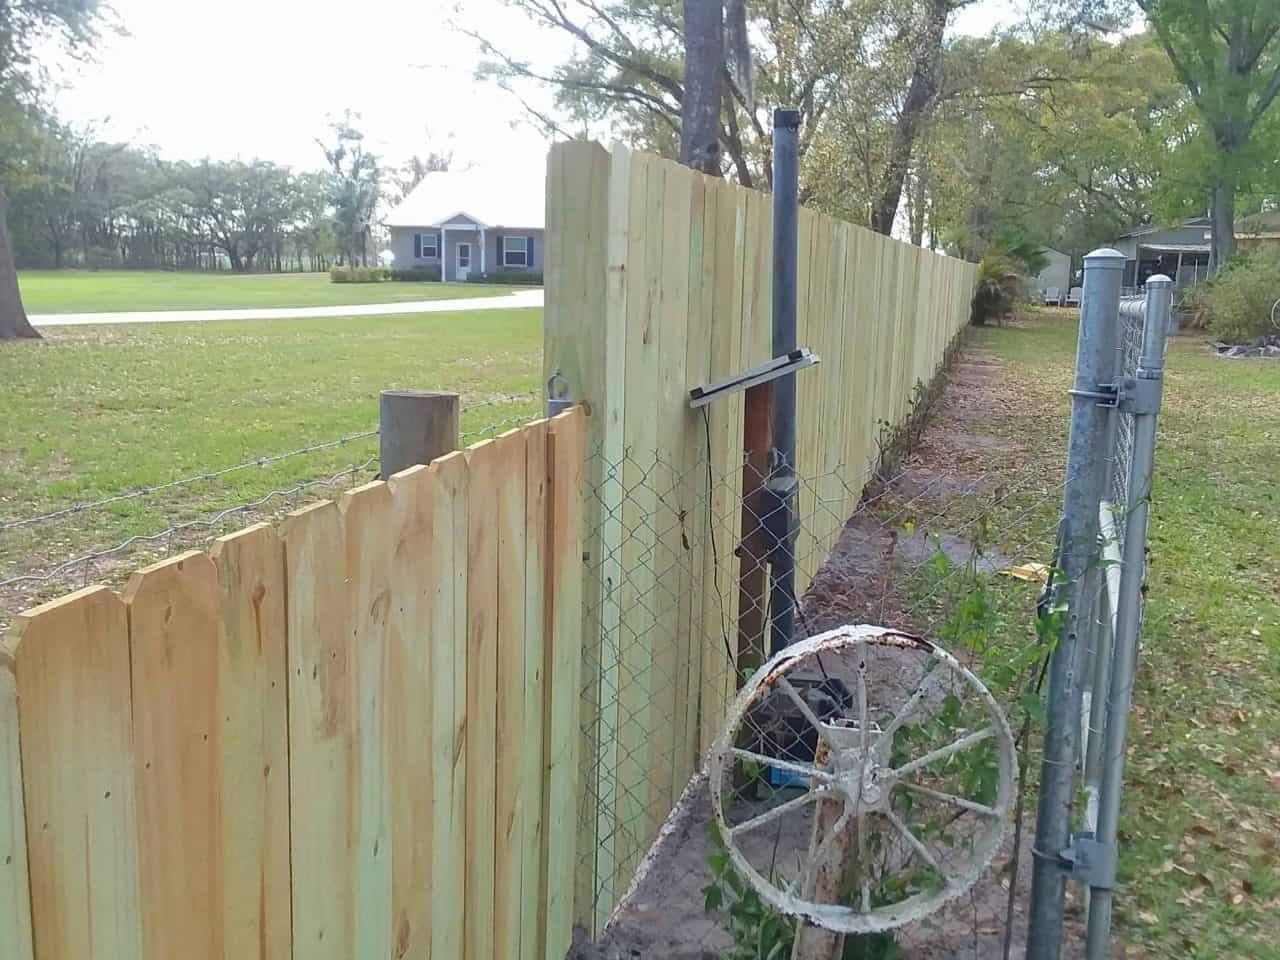 https://www.superiorfenceandrail.com/wp-content/uploads/2018/04/wood-fence-dover-superior-fence-and-rail-3-1280x960.jpg